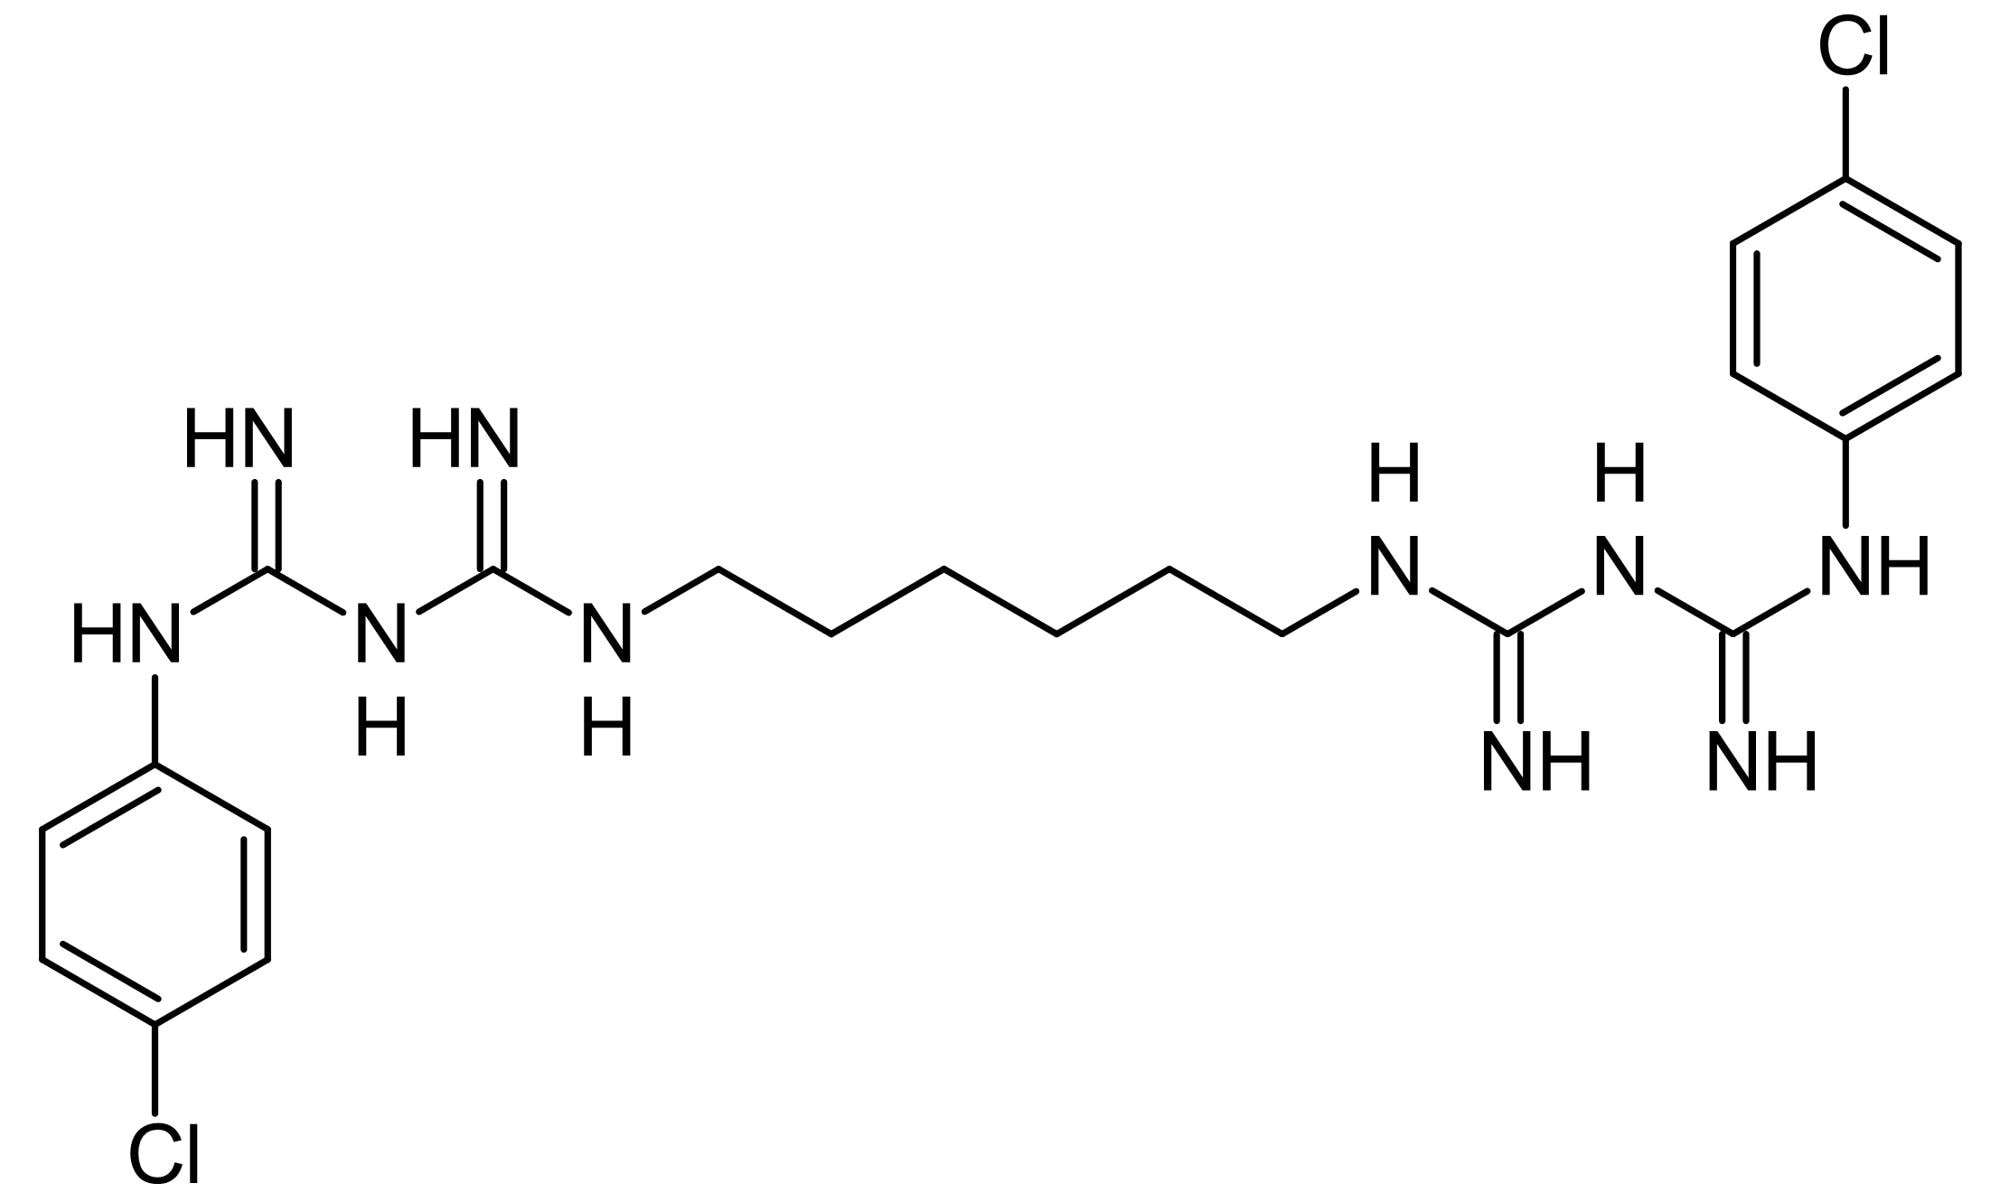 Chemical Structure - Chlorhexidine, anti-microbial agent (ab141090)